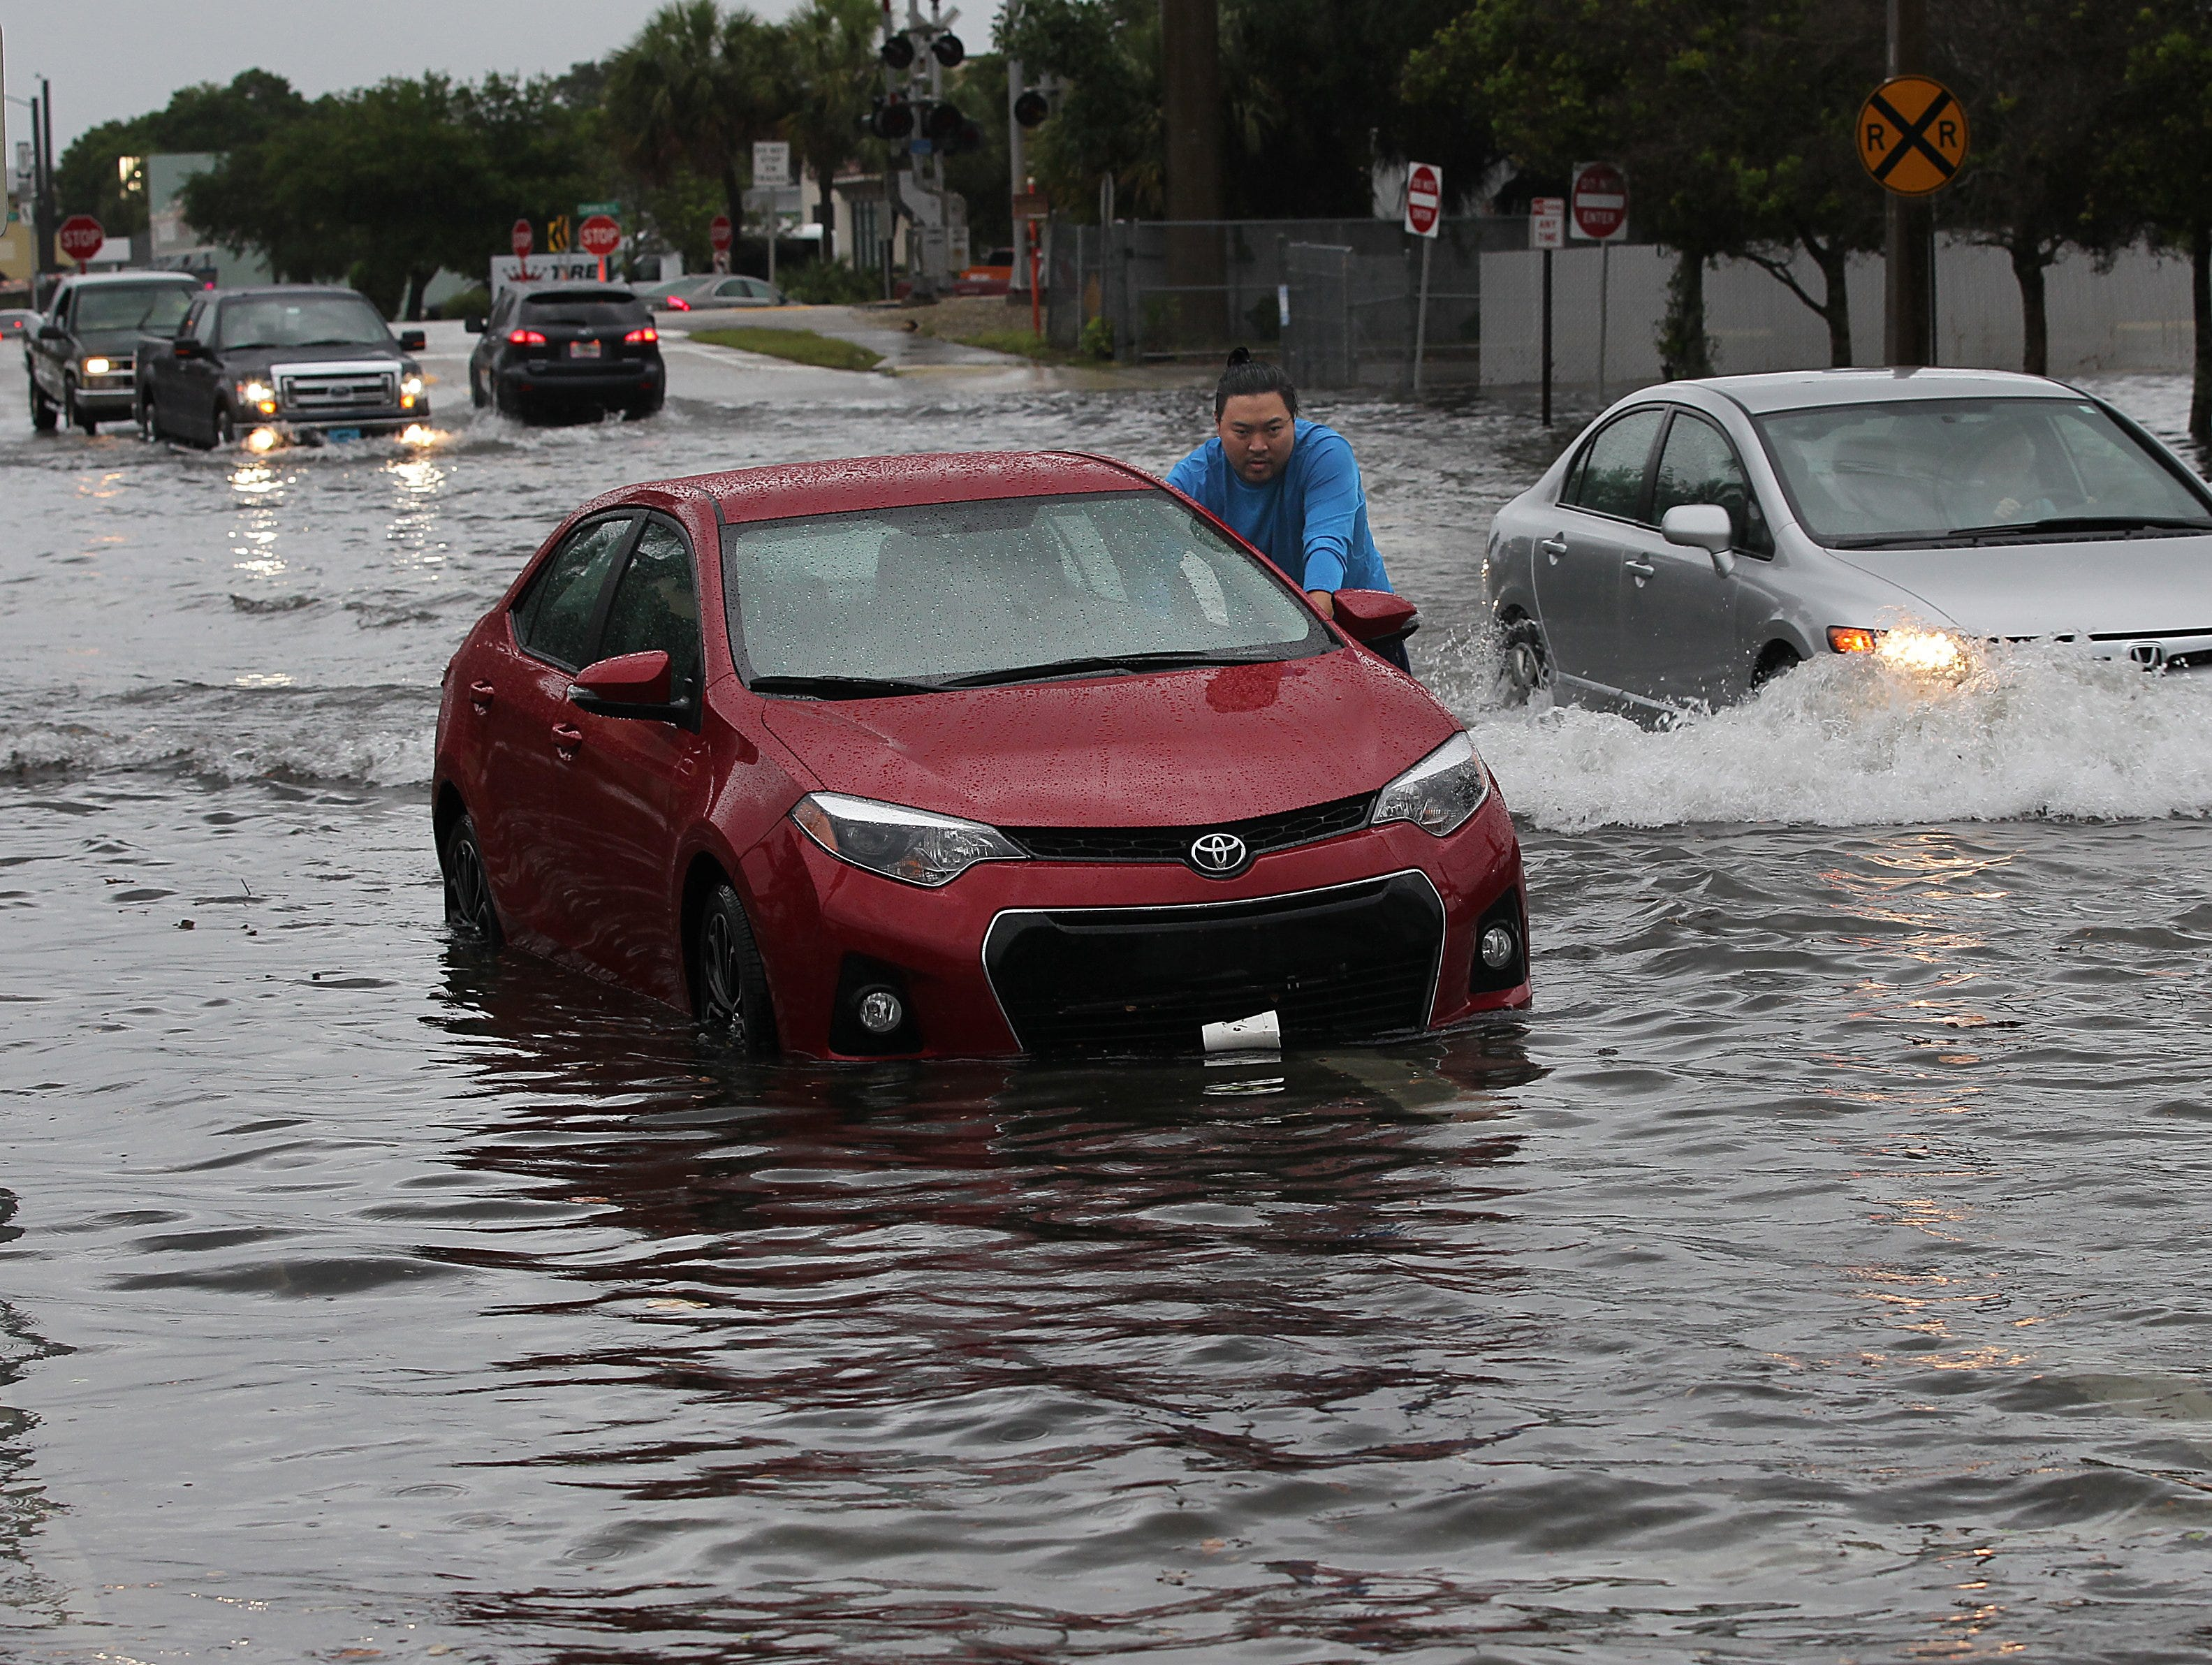 "John Yaung, of Grumpy's Burgers N Beer, a restaurant in Downtown Vero Beach, pushes a coworker's car to higher ground from a parking spot along 21st Street near 14th Avenue after being parked in water almost up to the tops of the tires Tuesday from a heavy rain storm. ""Little disheartening,"" Yang said after rescuing his car parked near his coworker's. ""No one is hurt, that's the important thing.""  (ERIC HASERT/TREASURE COAST NEWSPAPERS) John Yaung, cq PHOTOGRAPHED: Tuesday MAY 17, 2016"